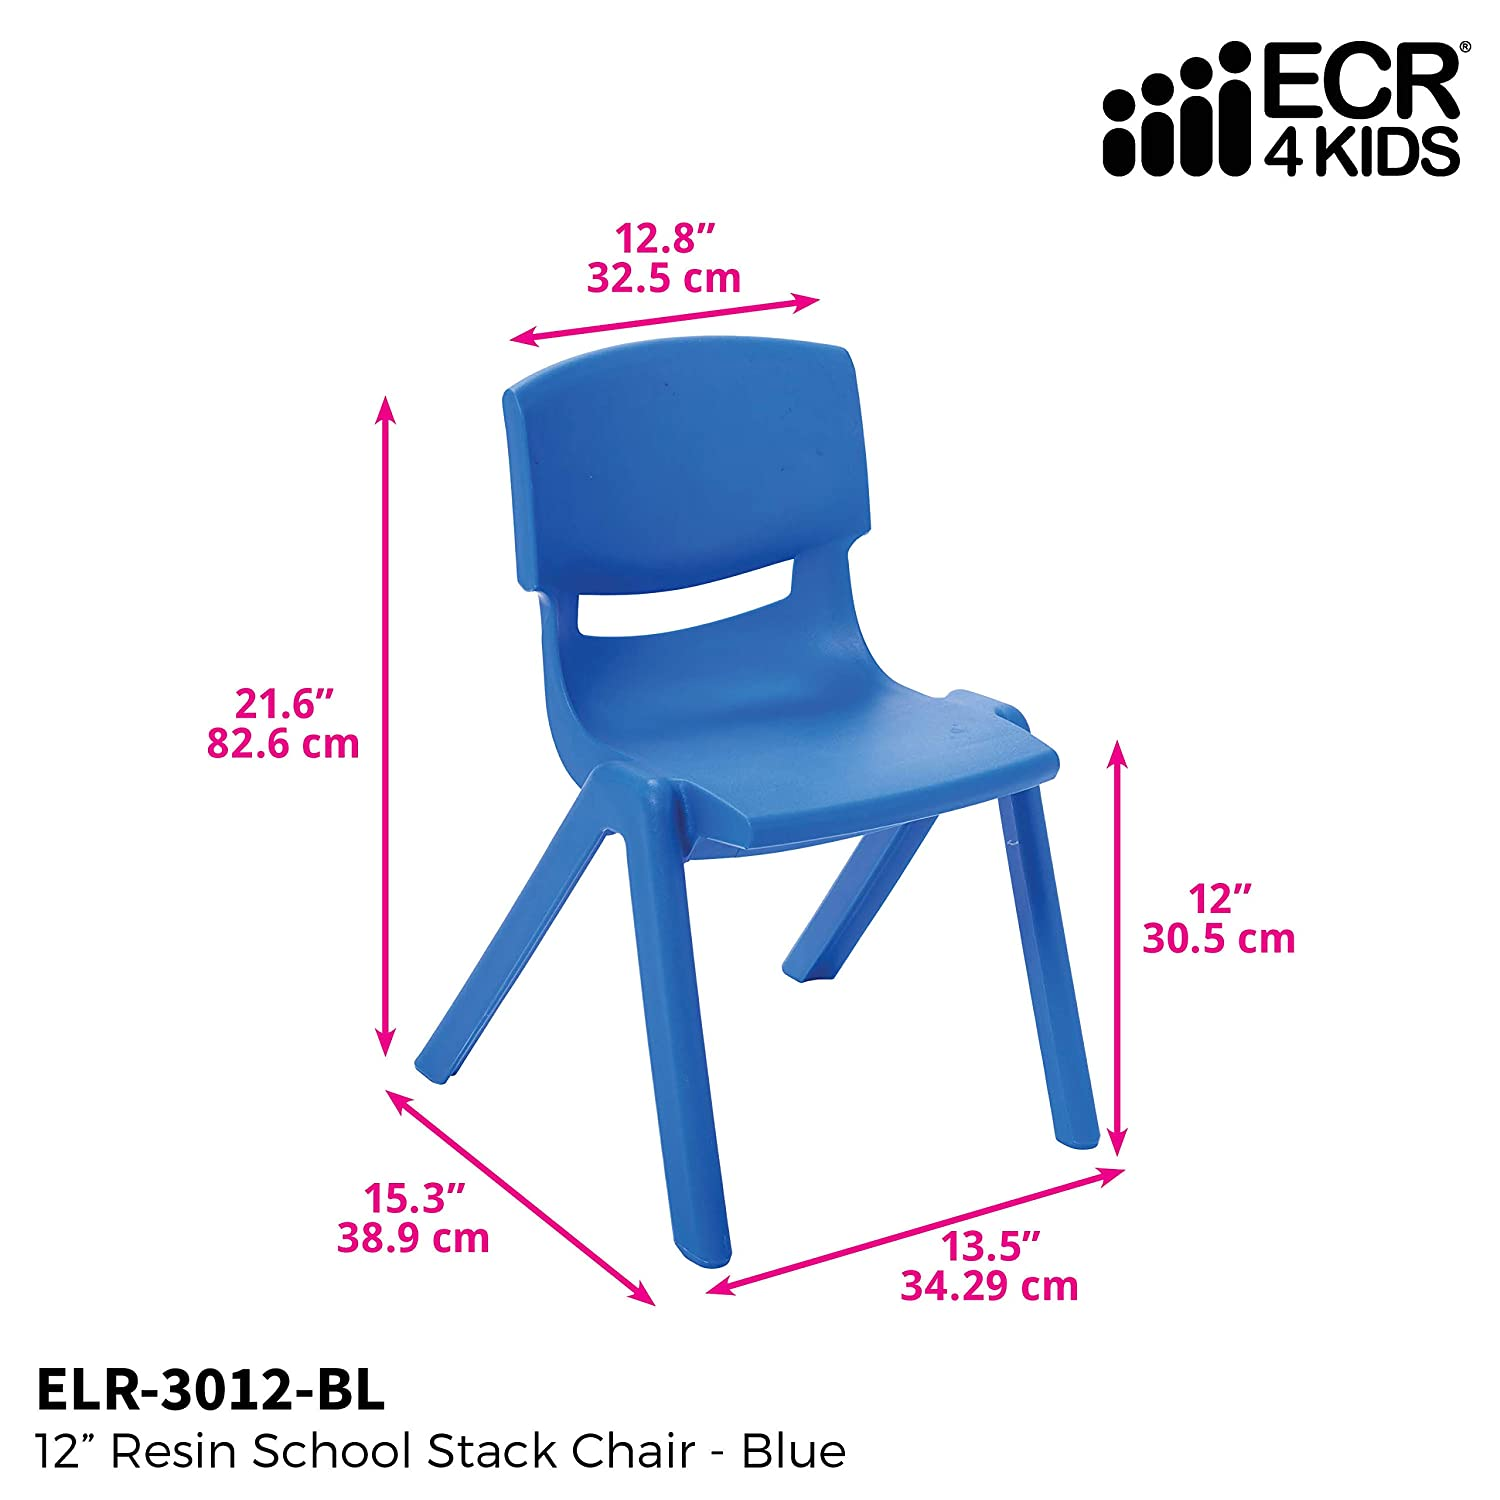 Ecr4Kids 12 Inch Plastic Stackable Classroom Chairs, Indoor/Outdoor Resin Stack Chairs für Kids, Blue (10-Pack)